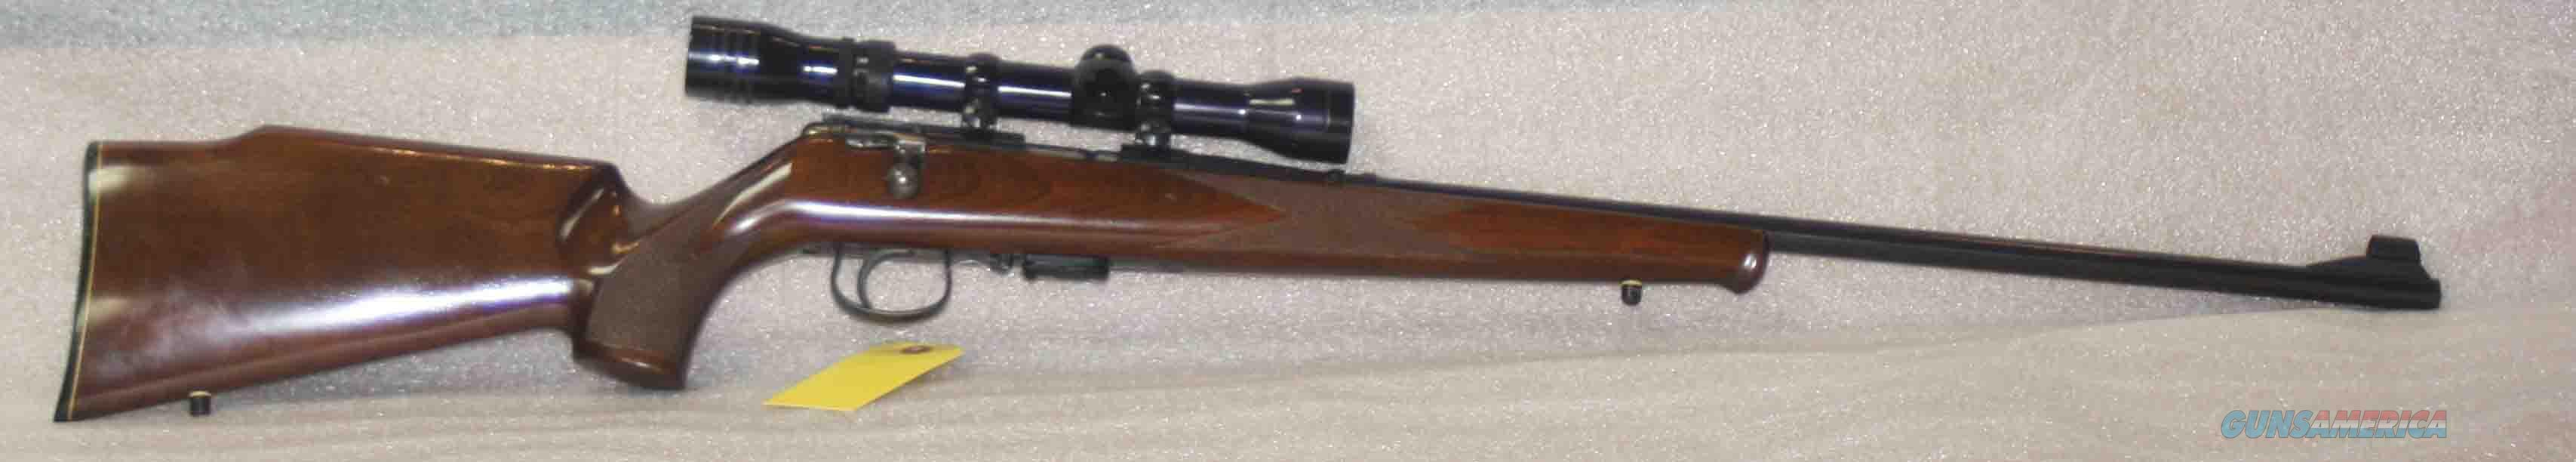 SAVAGE ANSCHUTZ MODEL 164M SPORTER 22 WMR WITH REDFIELD WIDEFIELD LOW PROFILE  Guns > Rifles > Savage Rifles > Other